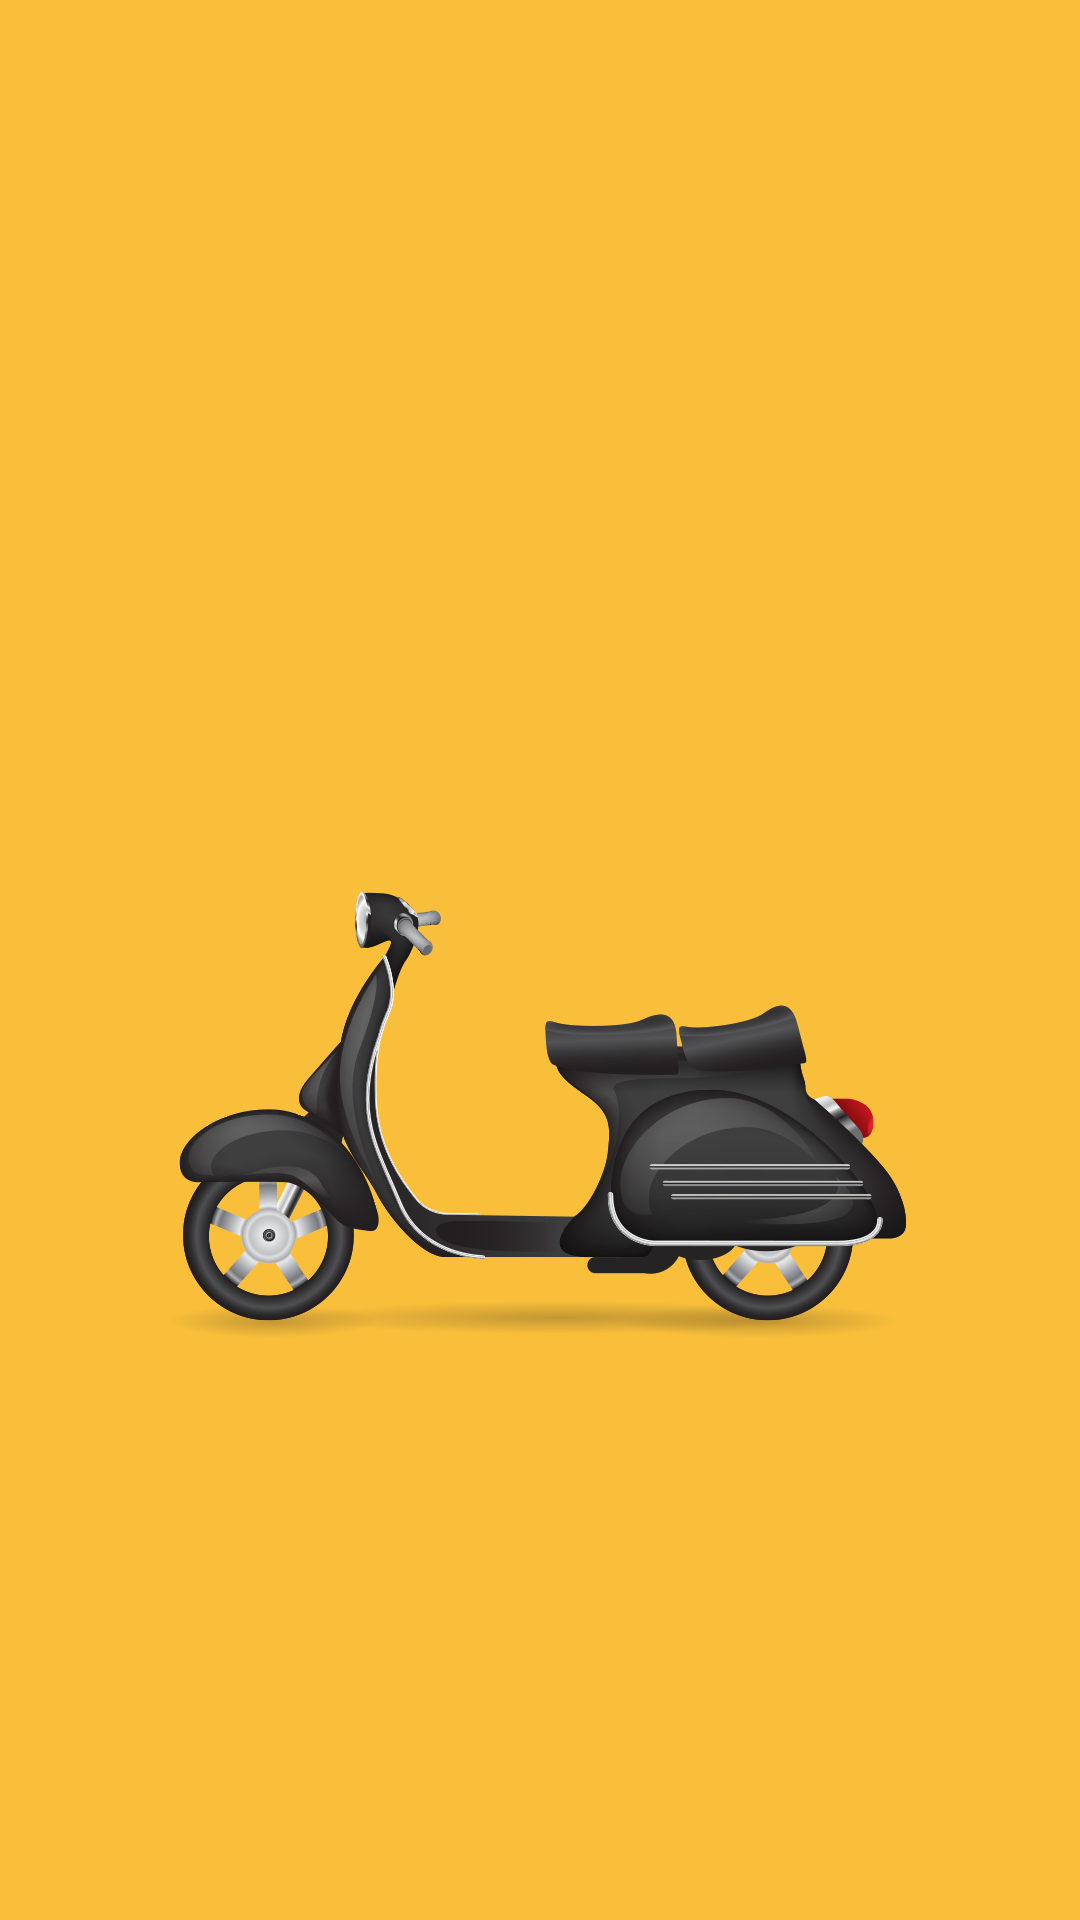 Minimal Iphone Wallpaper Vintage Italian Scooter My Photo